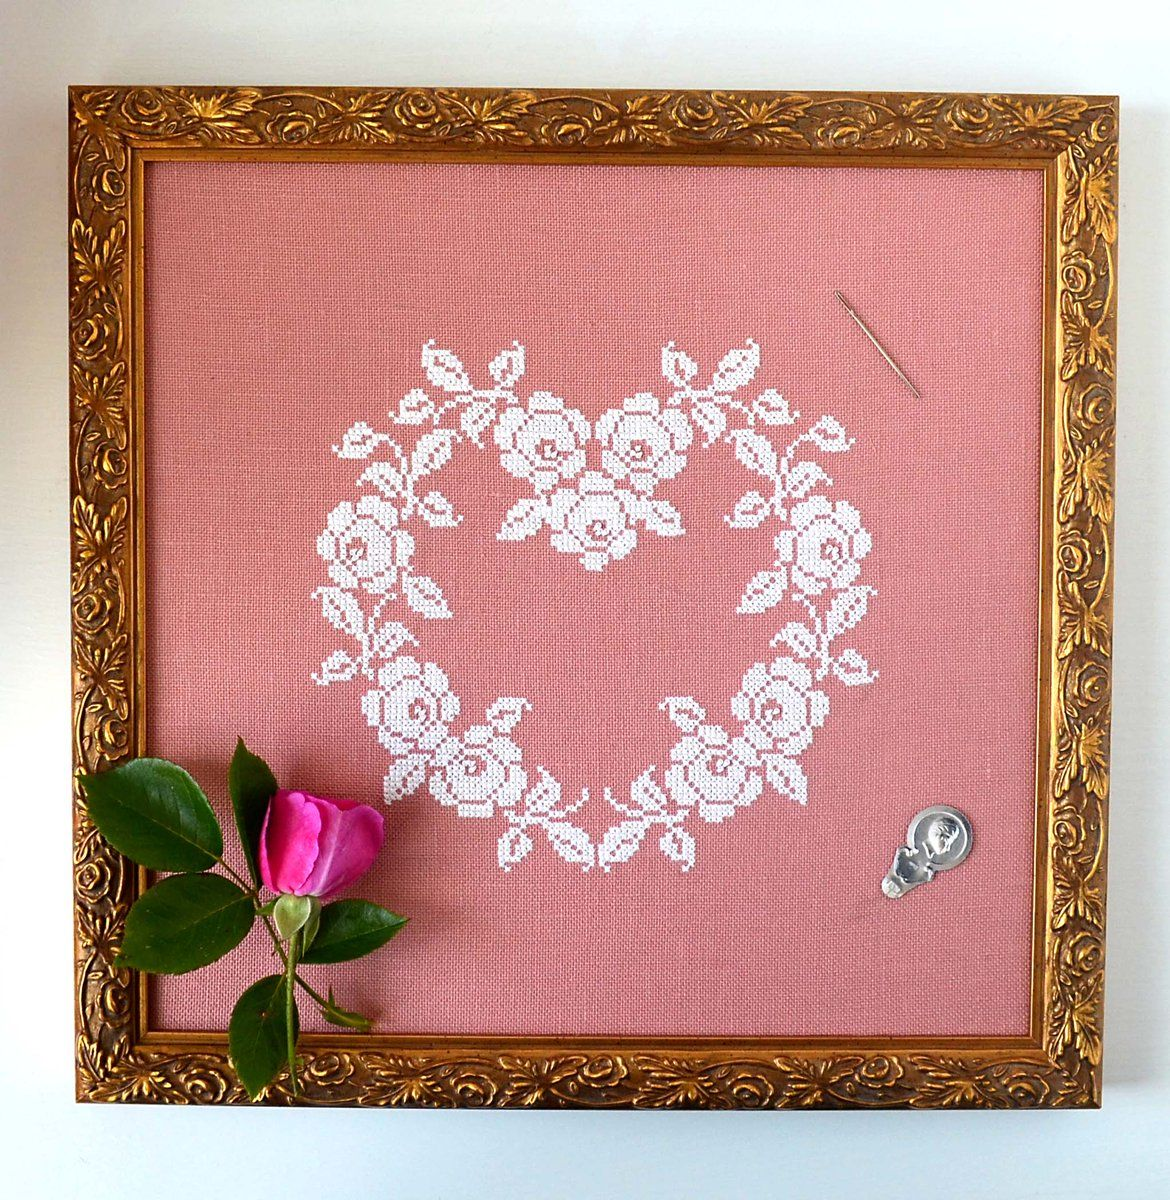 French Rose Heart Cross Stitch Pattern.  Vintage Needlework. Vintage Embroidery. Shabby Chic. Hoop Art.